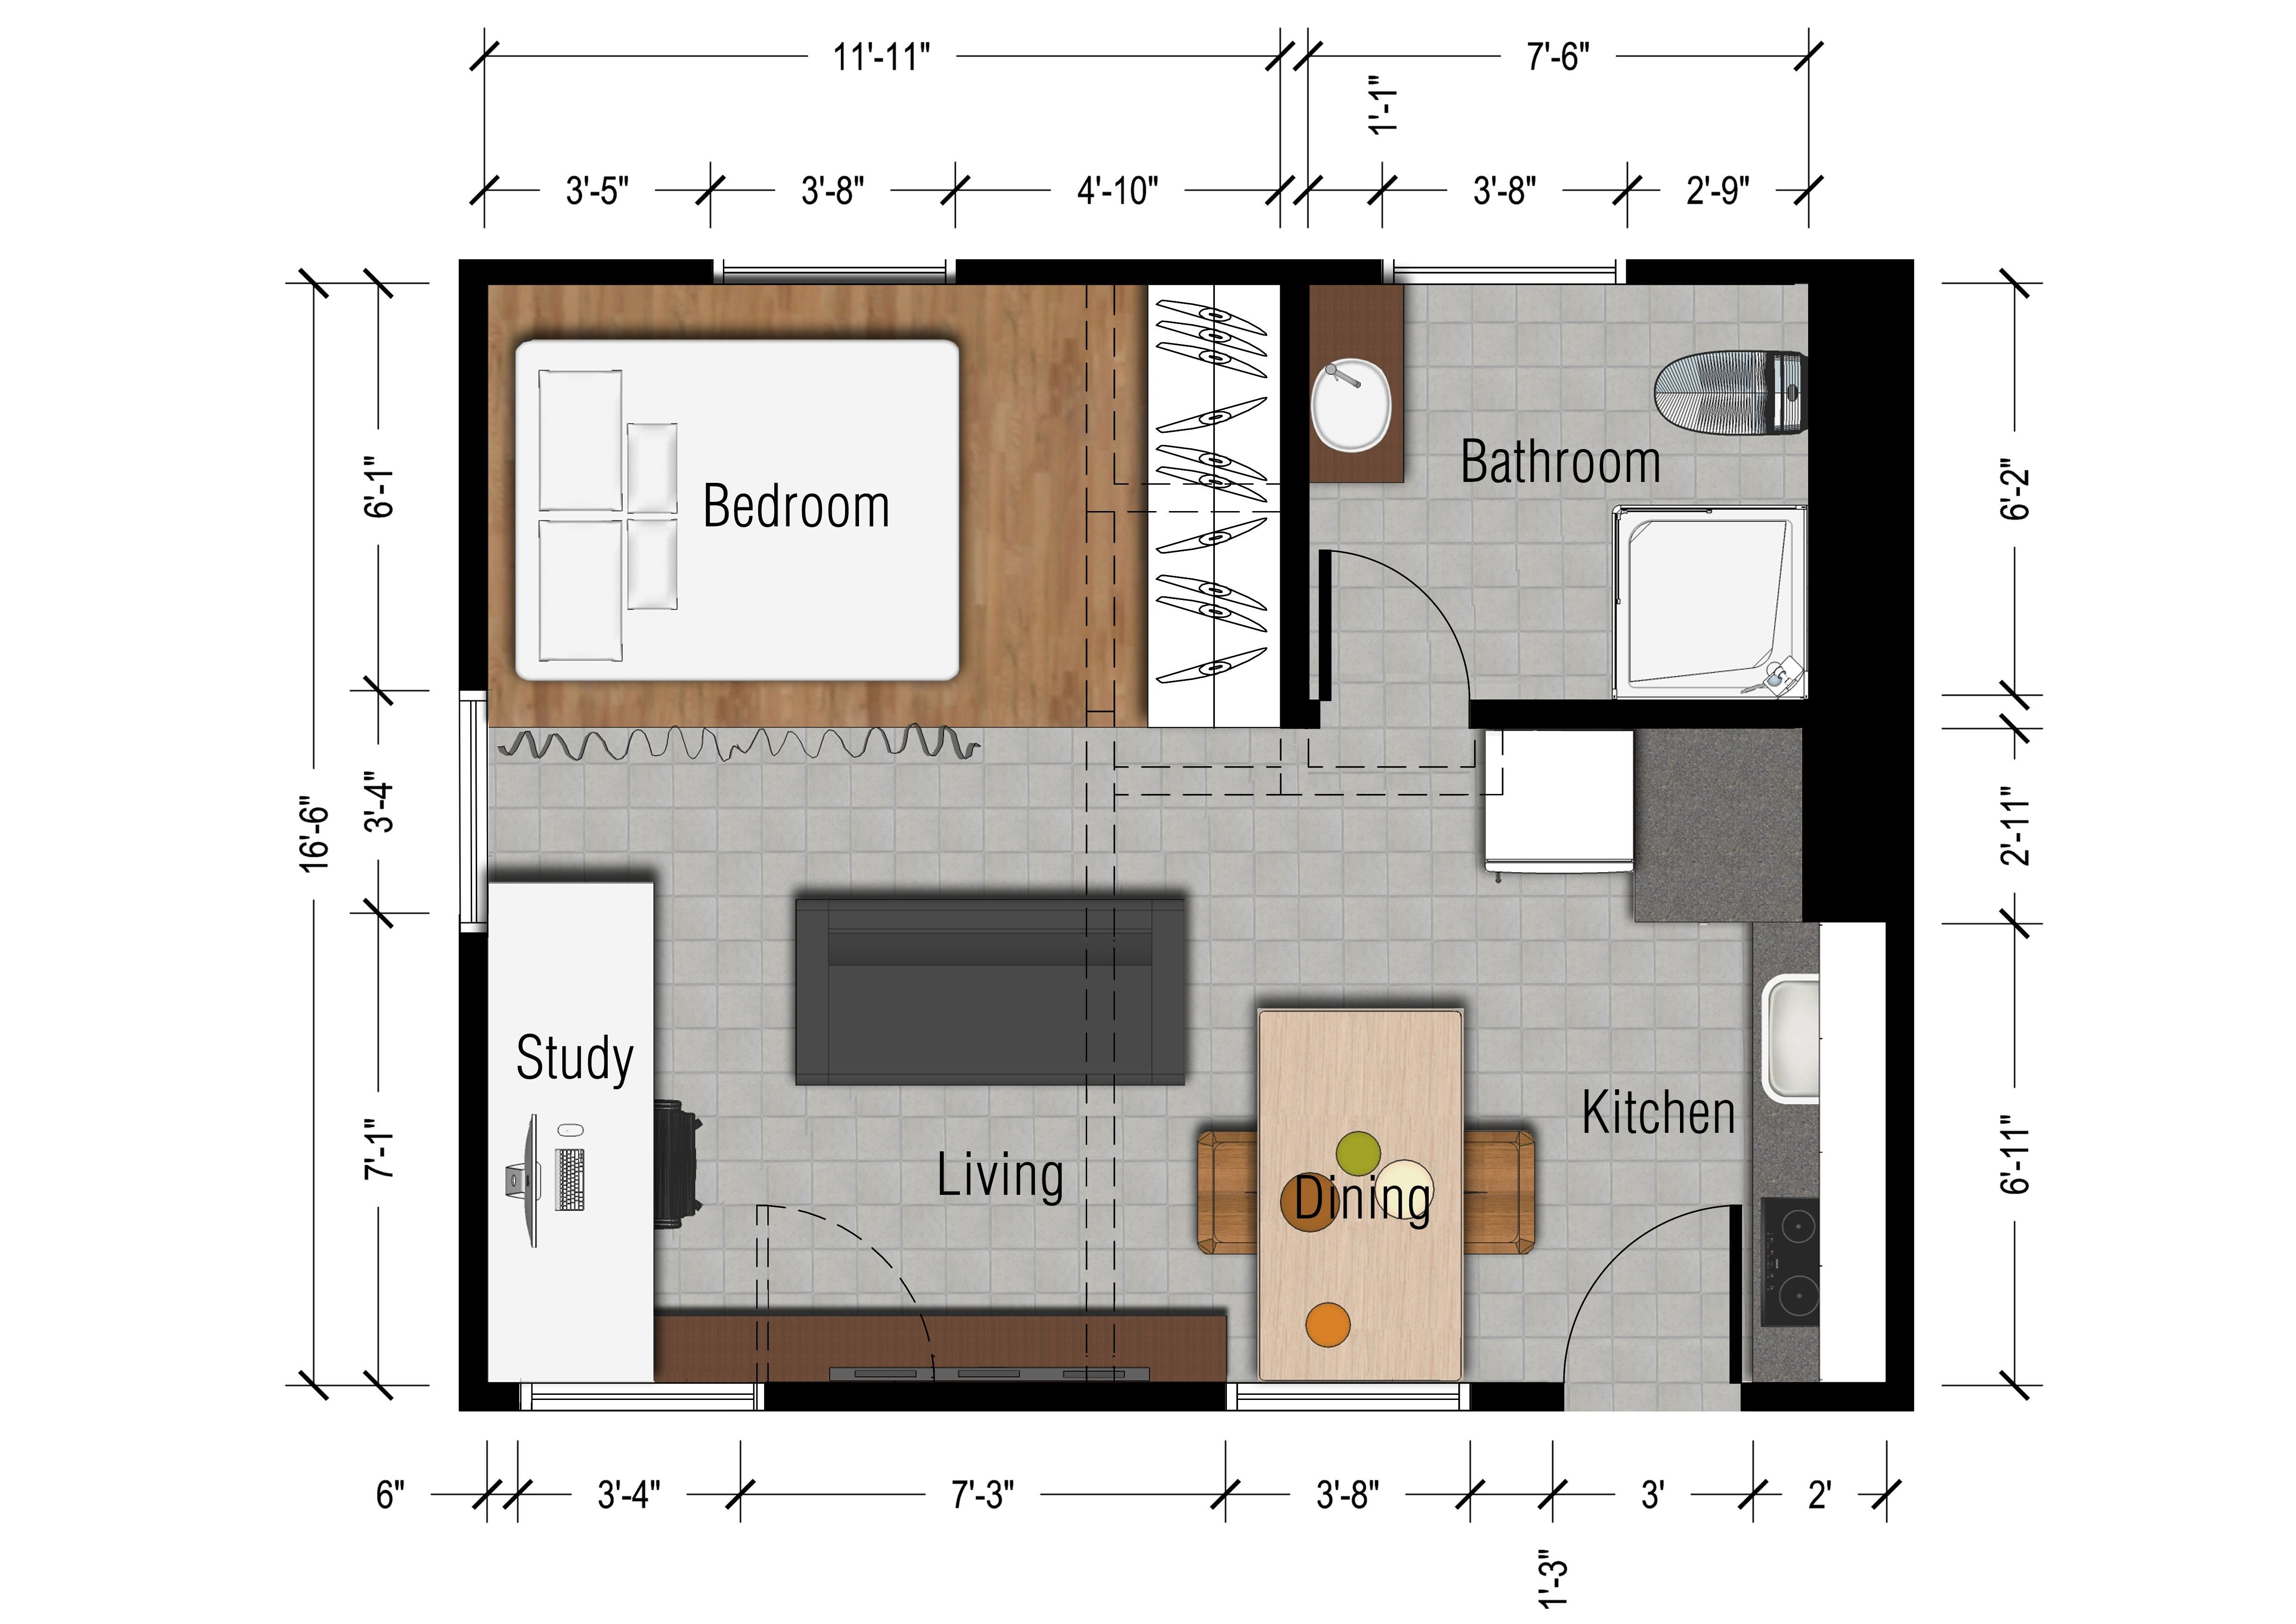 500 Square Feet Luxury 500 Sq Ft Small Apartment Plans